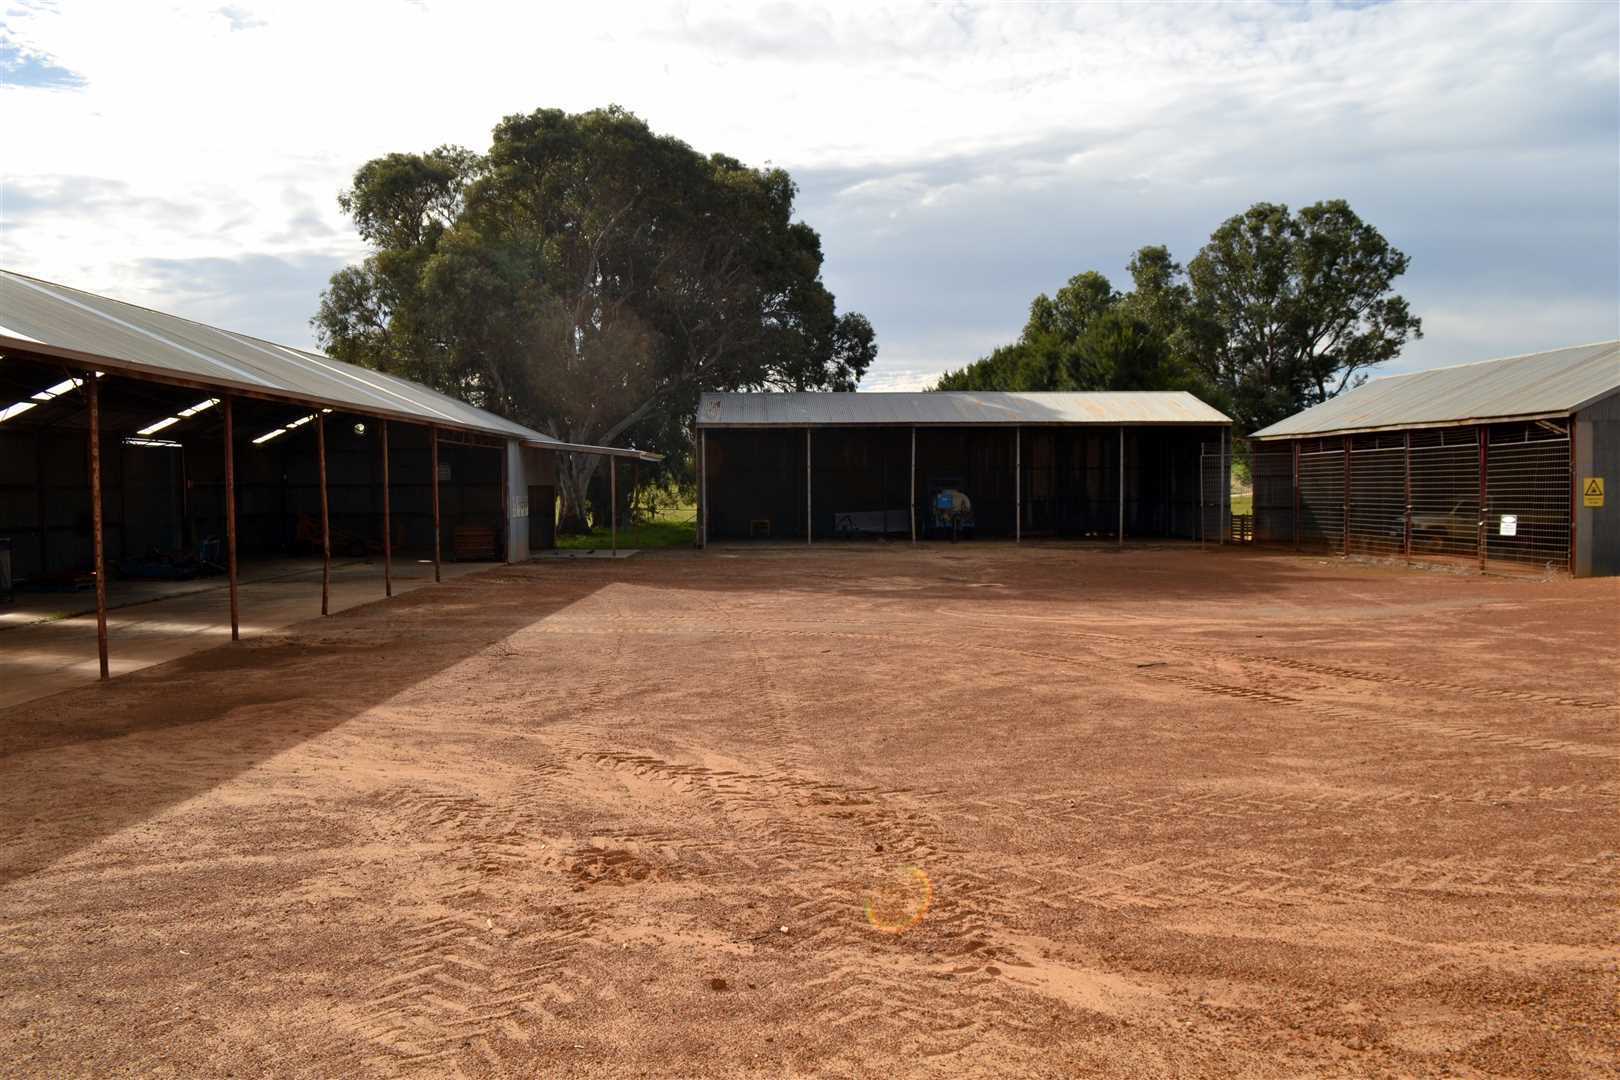 parking and sheds